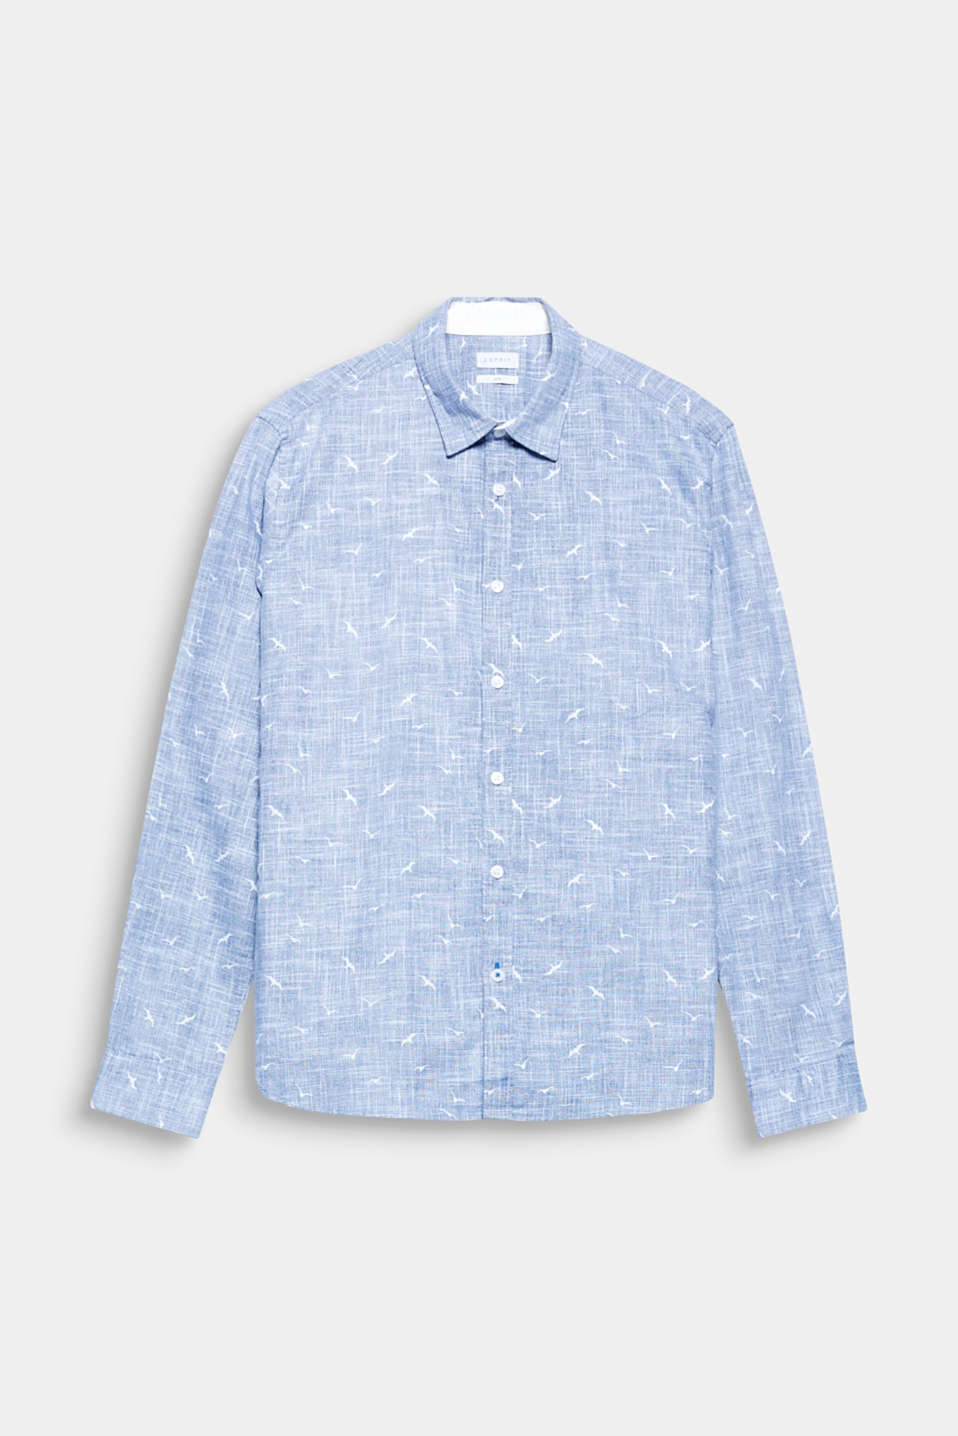 The distinctive slub texture and the all-over bird print give this shirt its unique look.